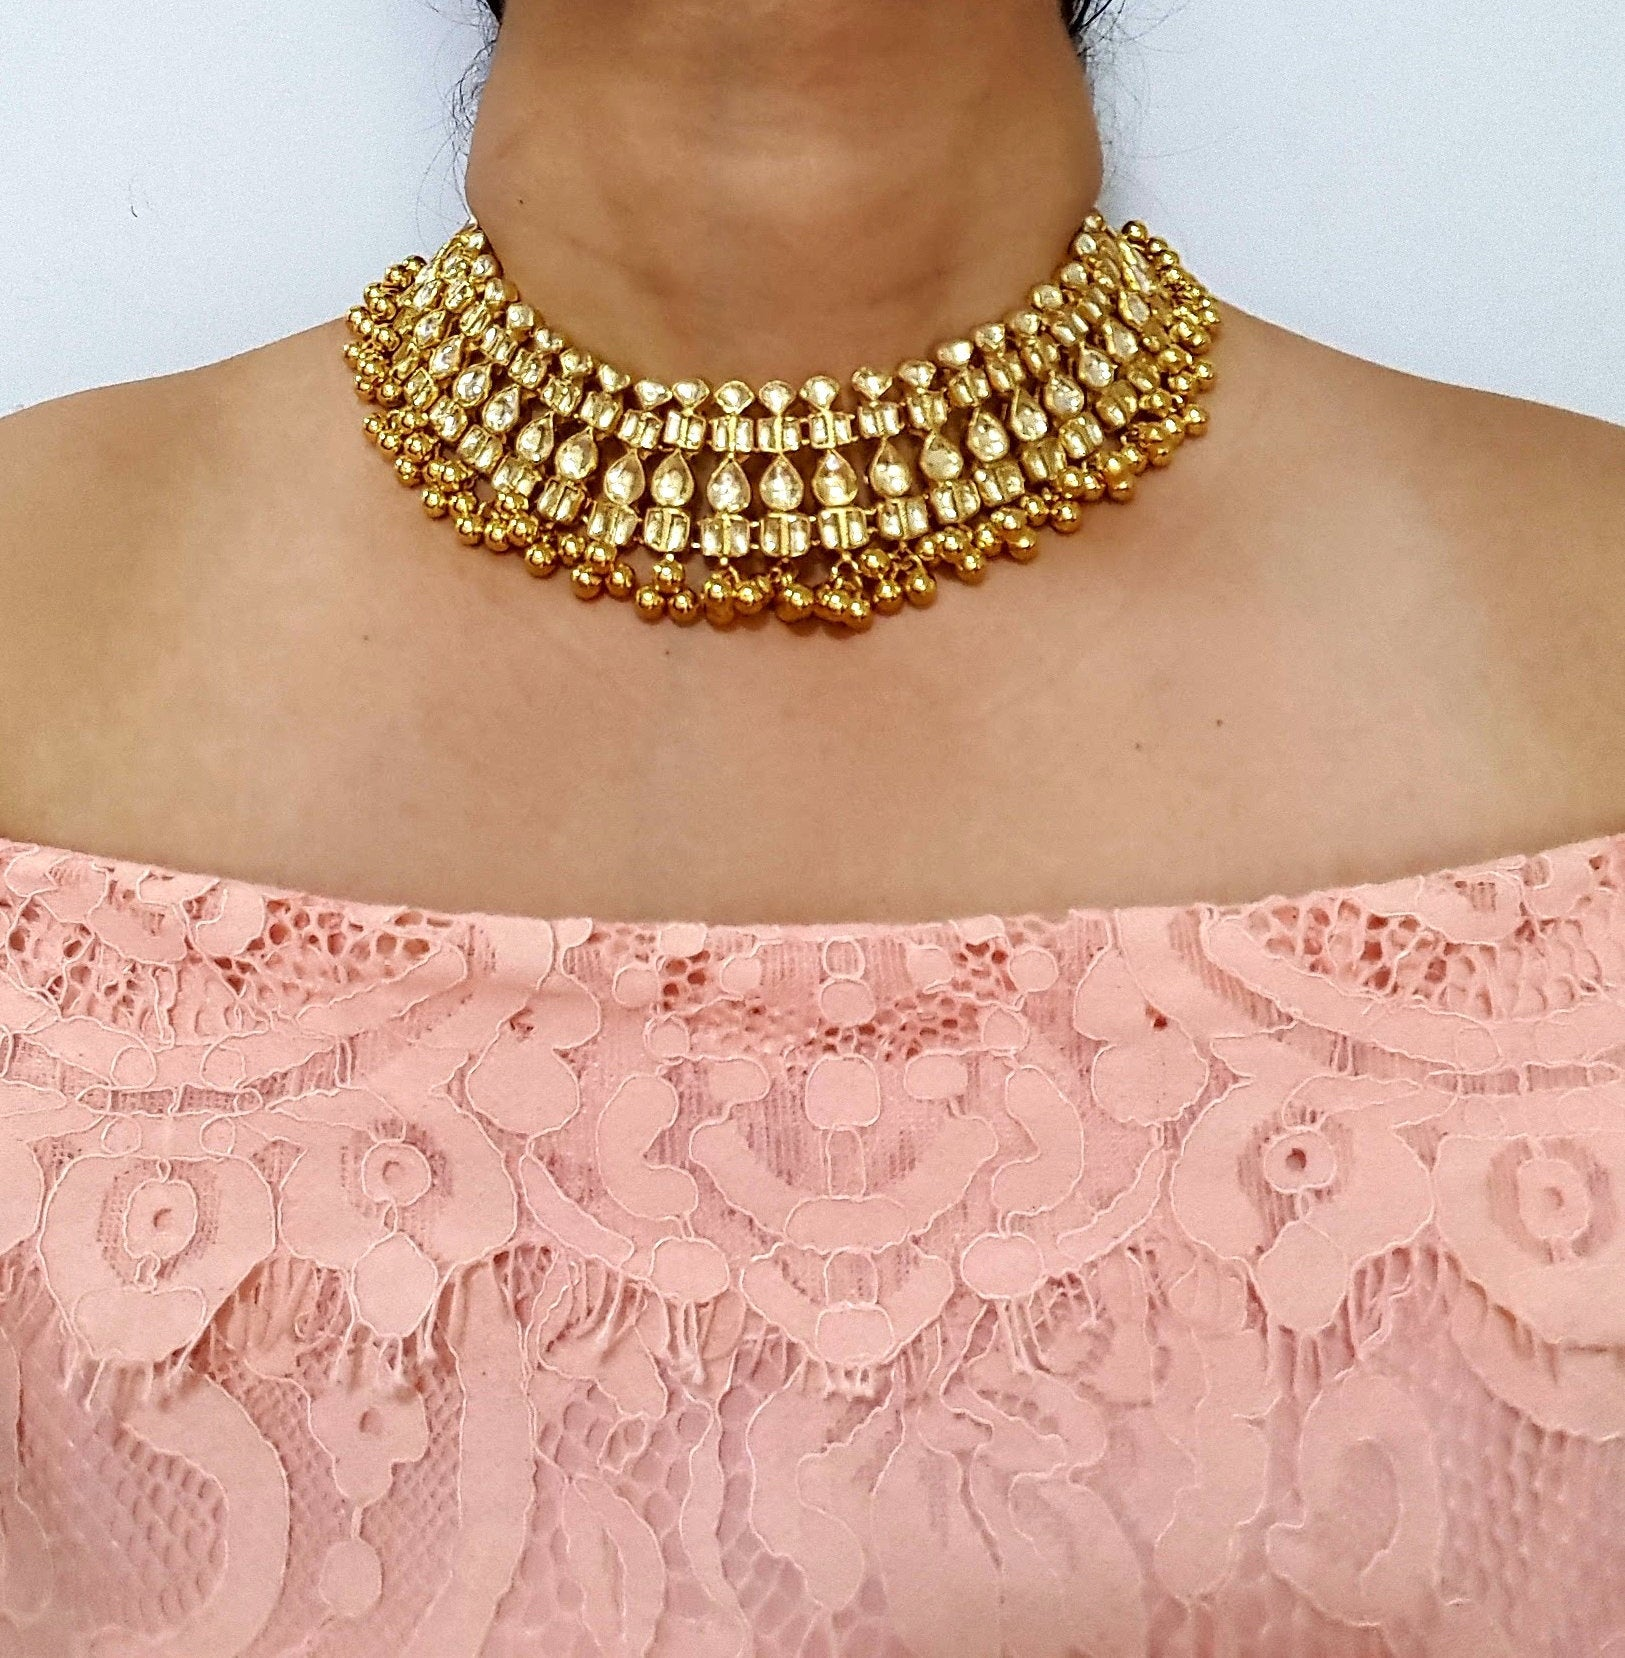 High quality kundan necklace bridal Indian Pakistani South Asian wear party wear jewelry - Pink Chunari